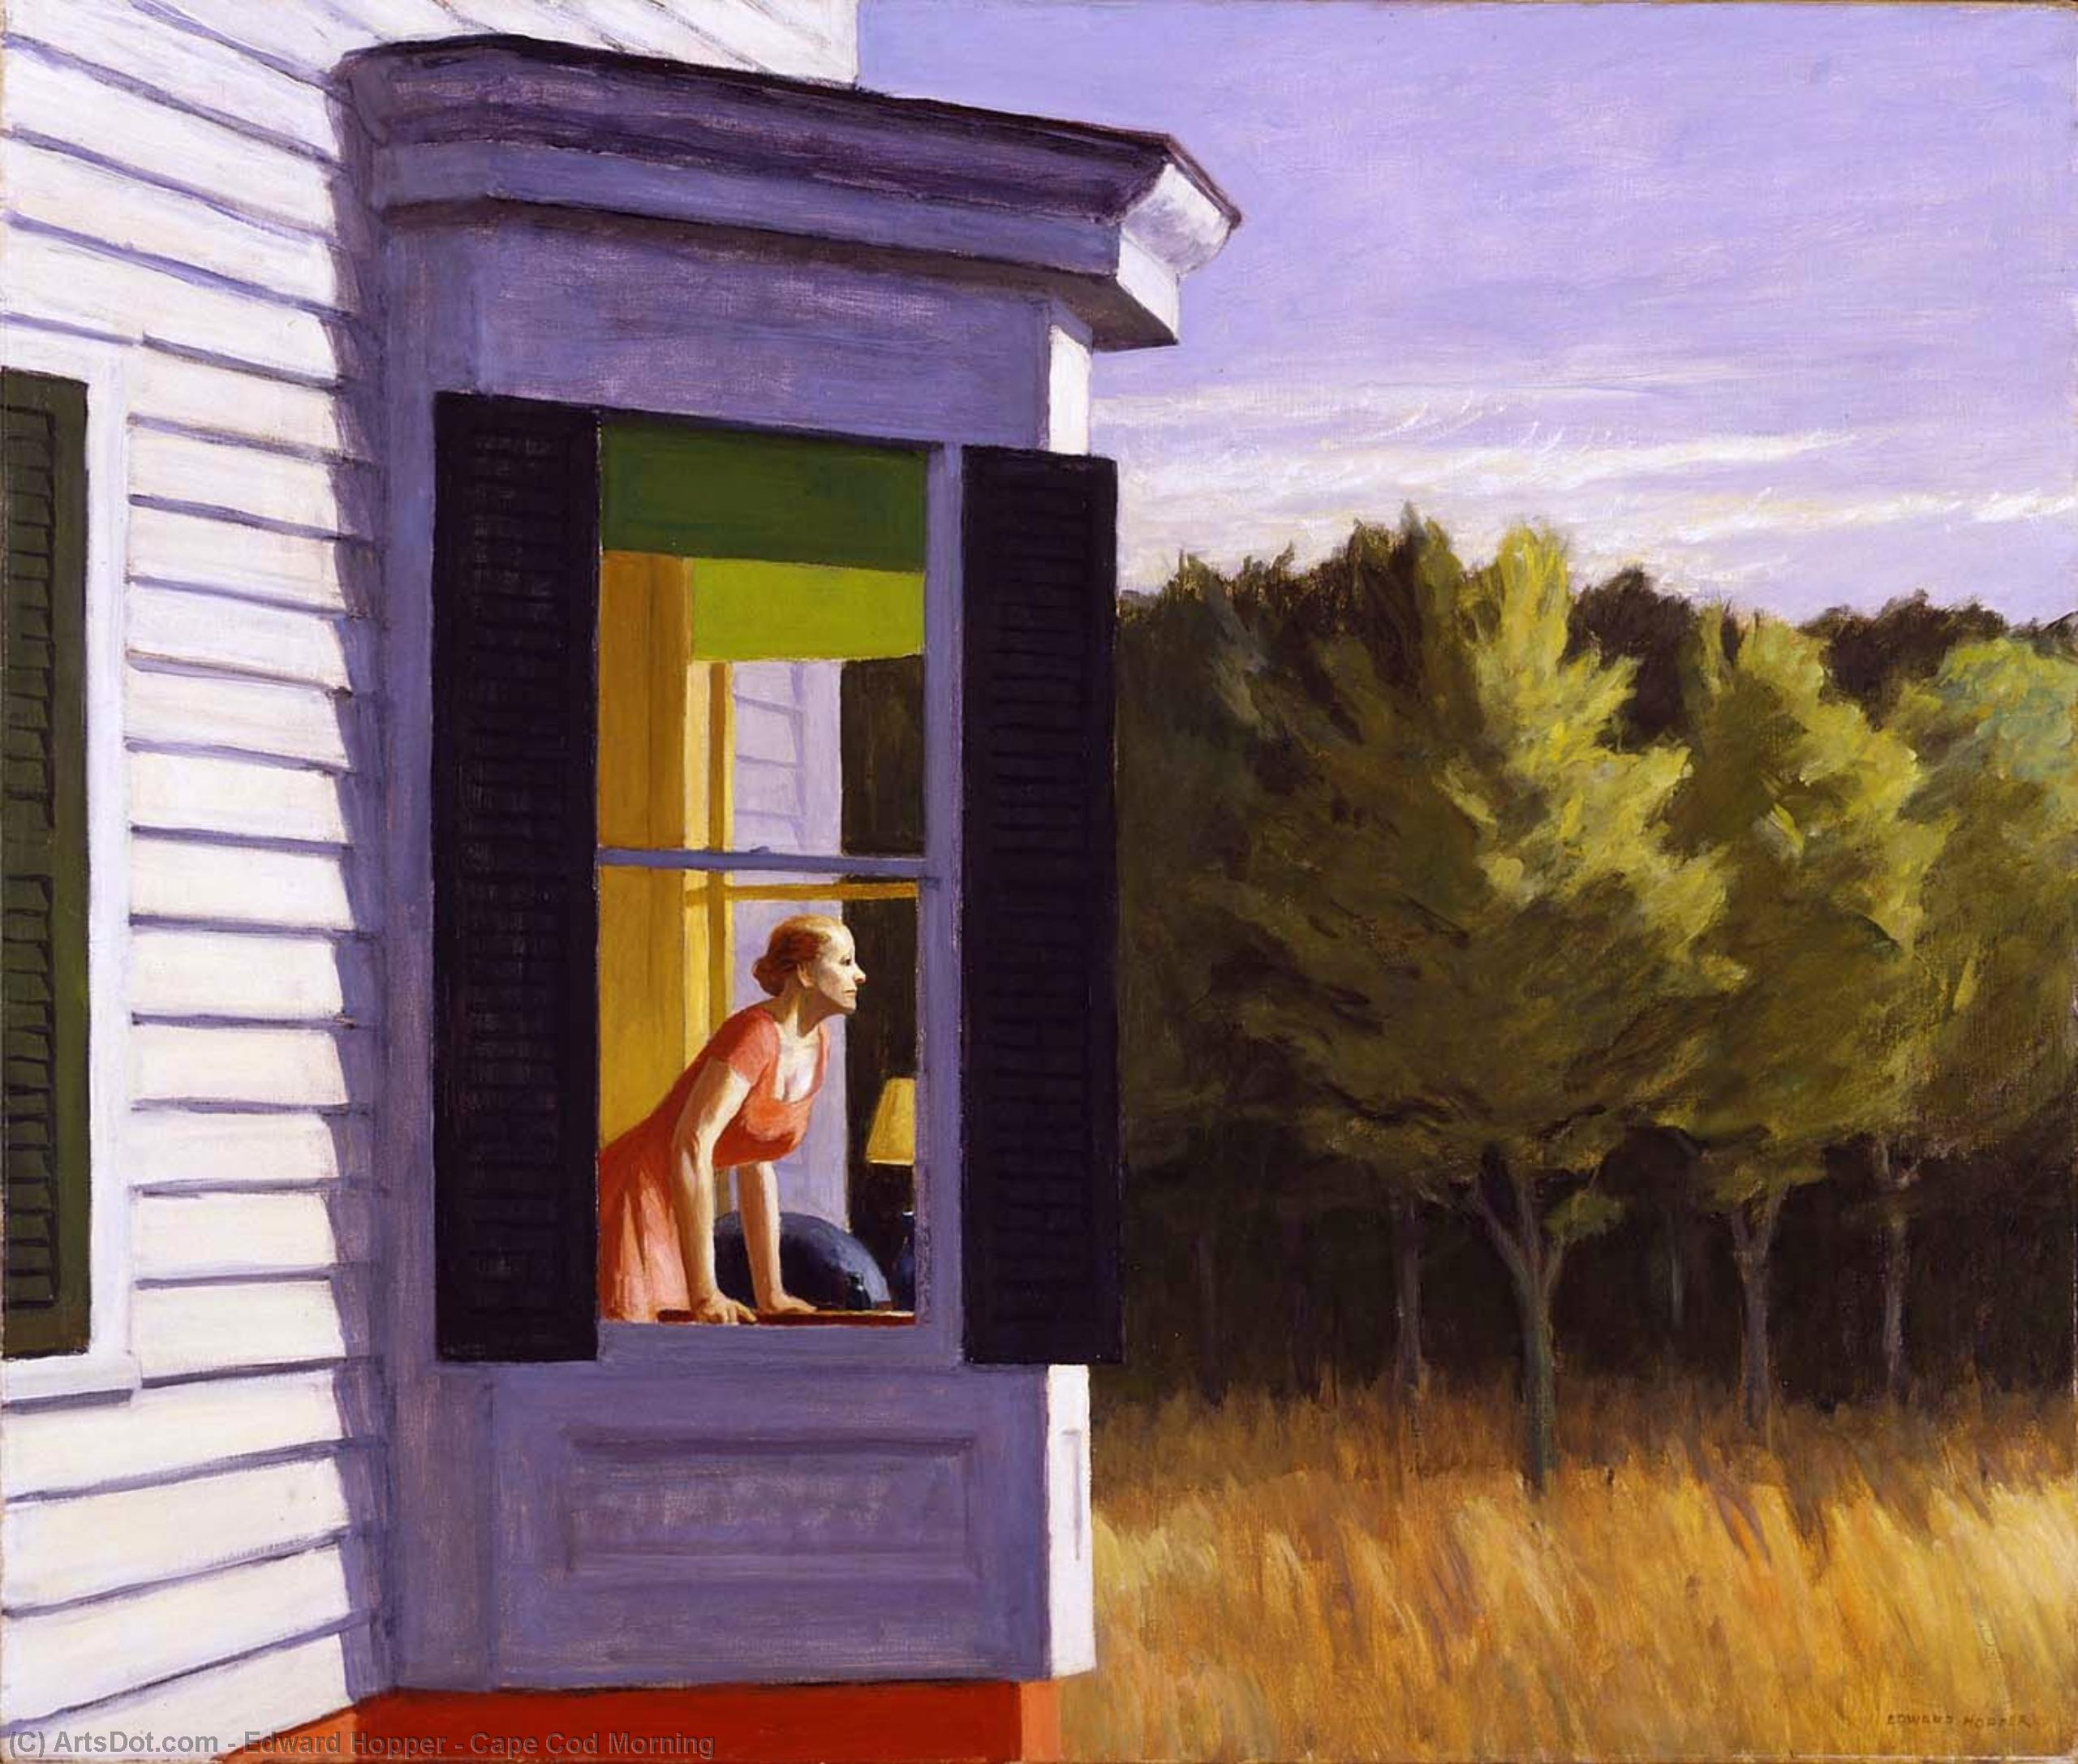 Cape Cod Morning, 1950 by Edward Hopper (1931-1967, United States) |  | ArtsDot.com